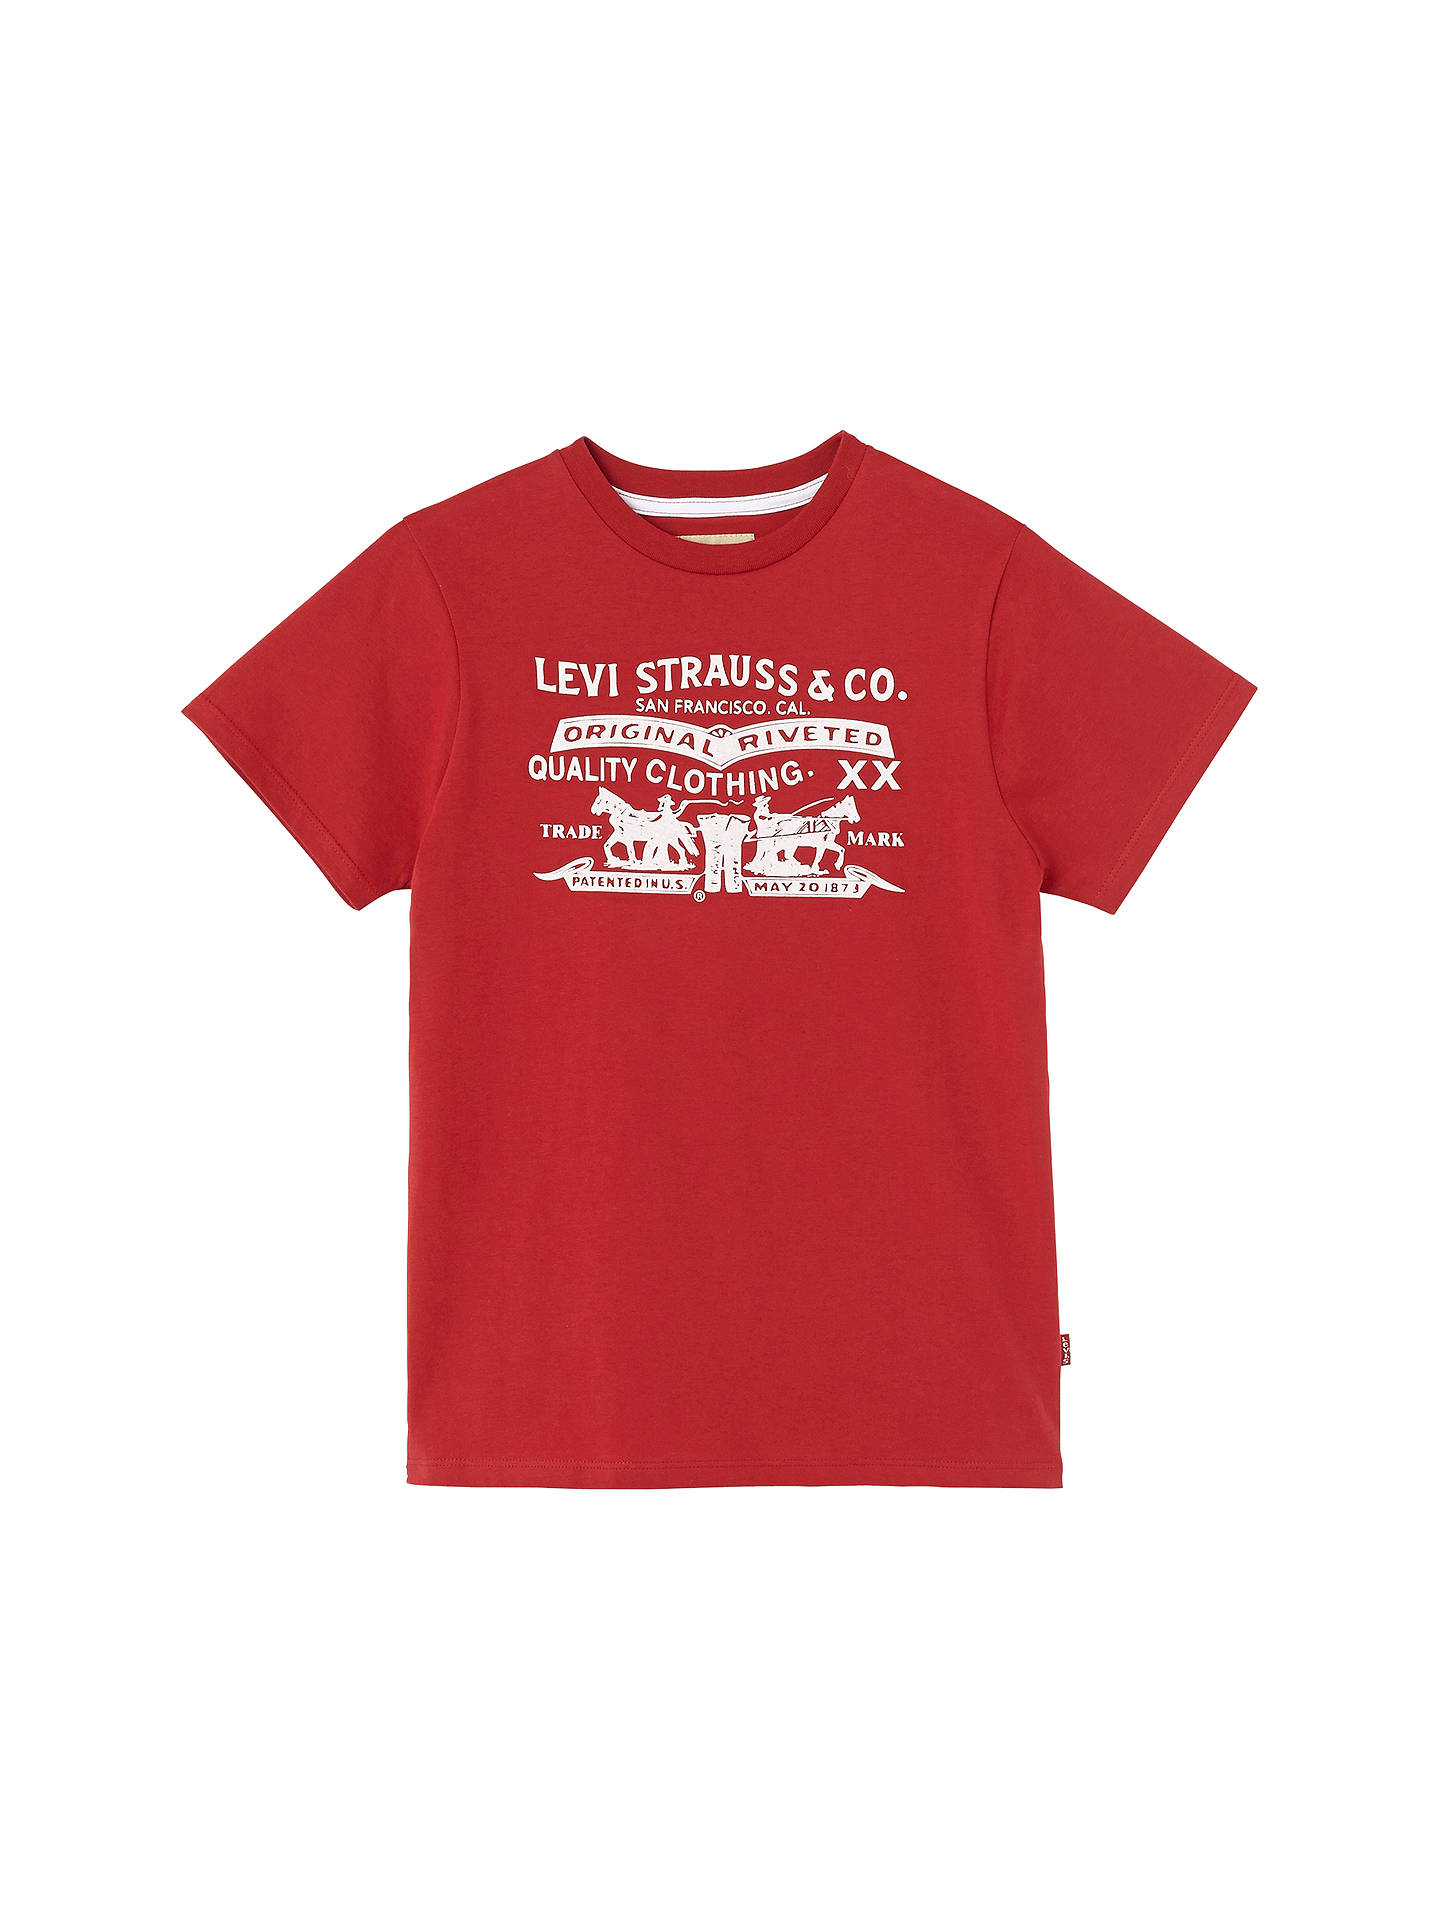 66cda570 Levi's Boys' Two Horse Graphic Short Sleeve T-Shirt, Red at John ...